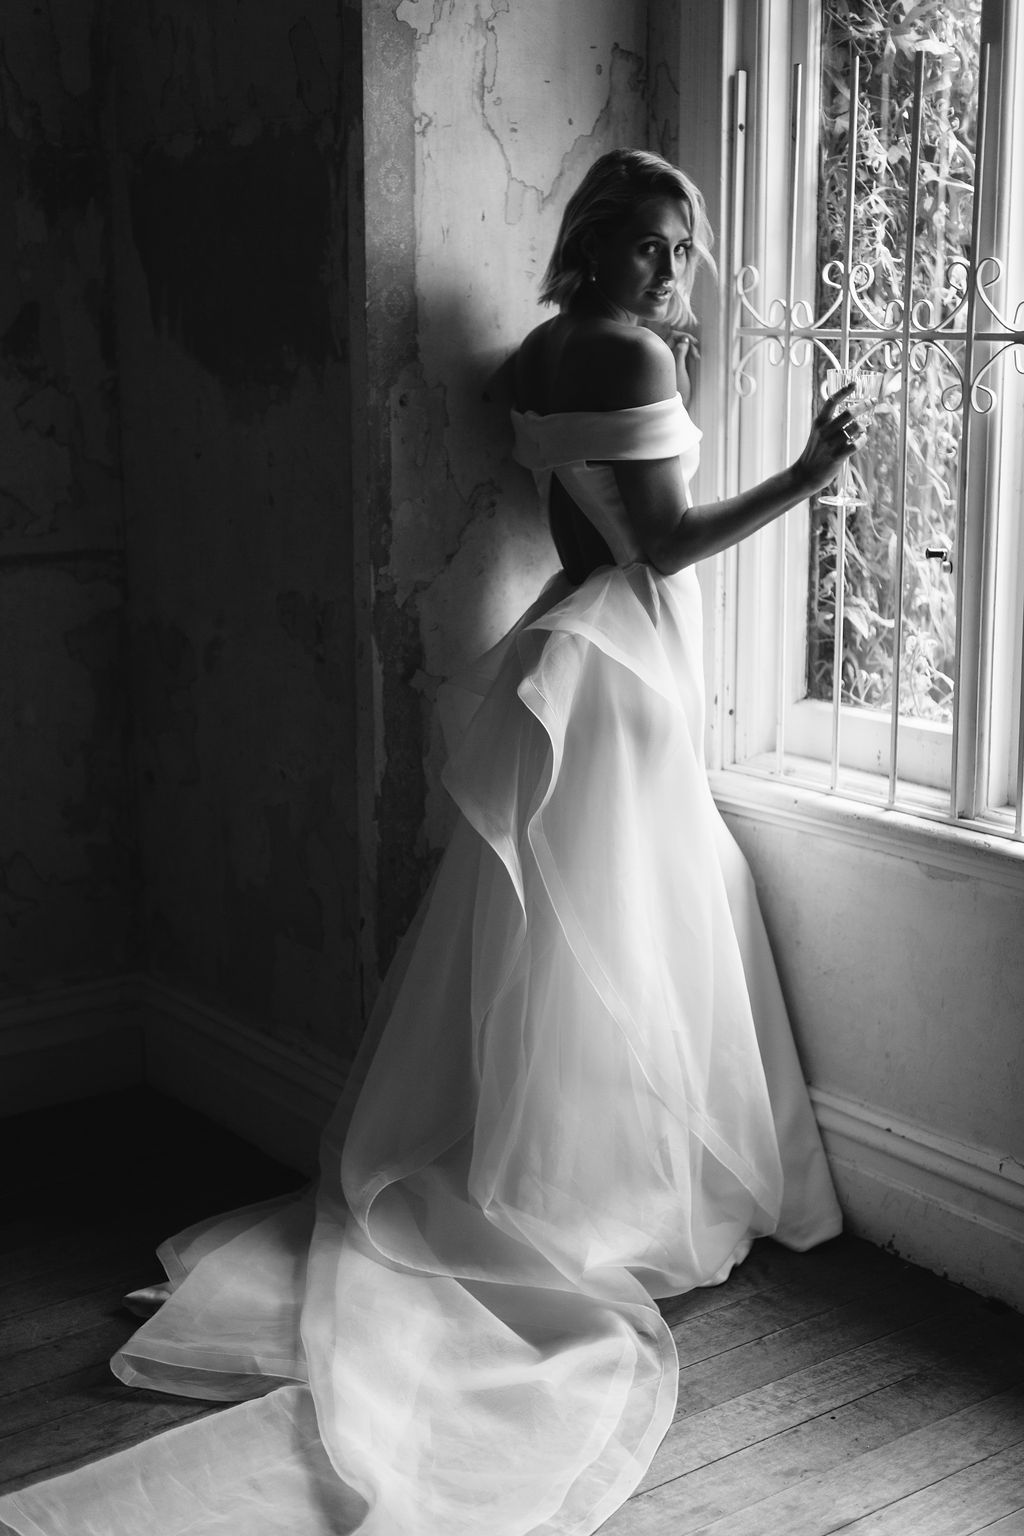 AMELIE GEORGE CAMPAIGN NATURAL BRIDE IN OLD VINTAGE BALLROOM WINDOW WITH WEDDING DRESS WITH TUELLE SKIRT IN BLACK AND WHITE ONLY